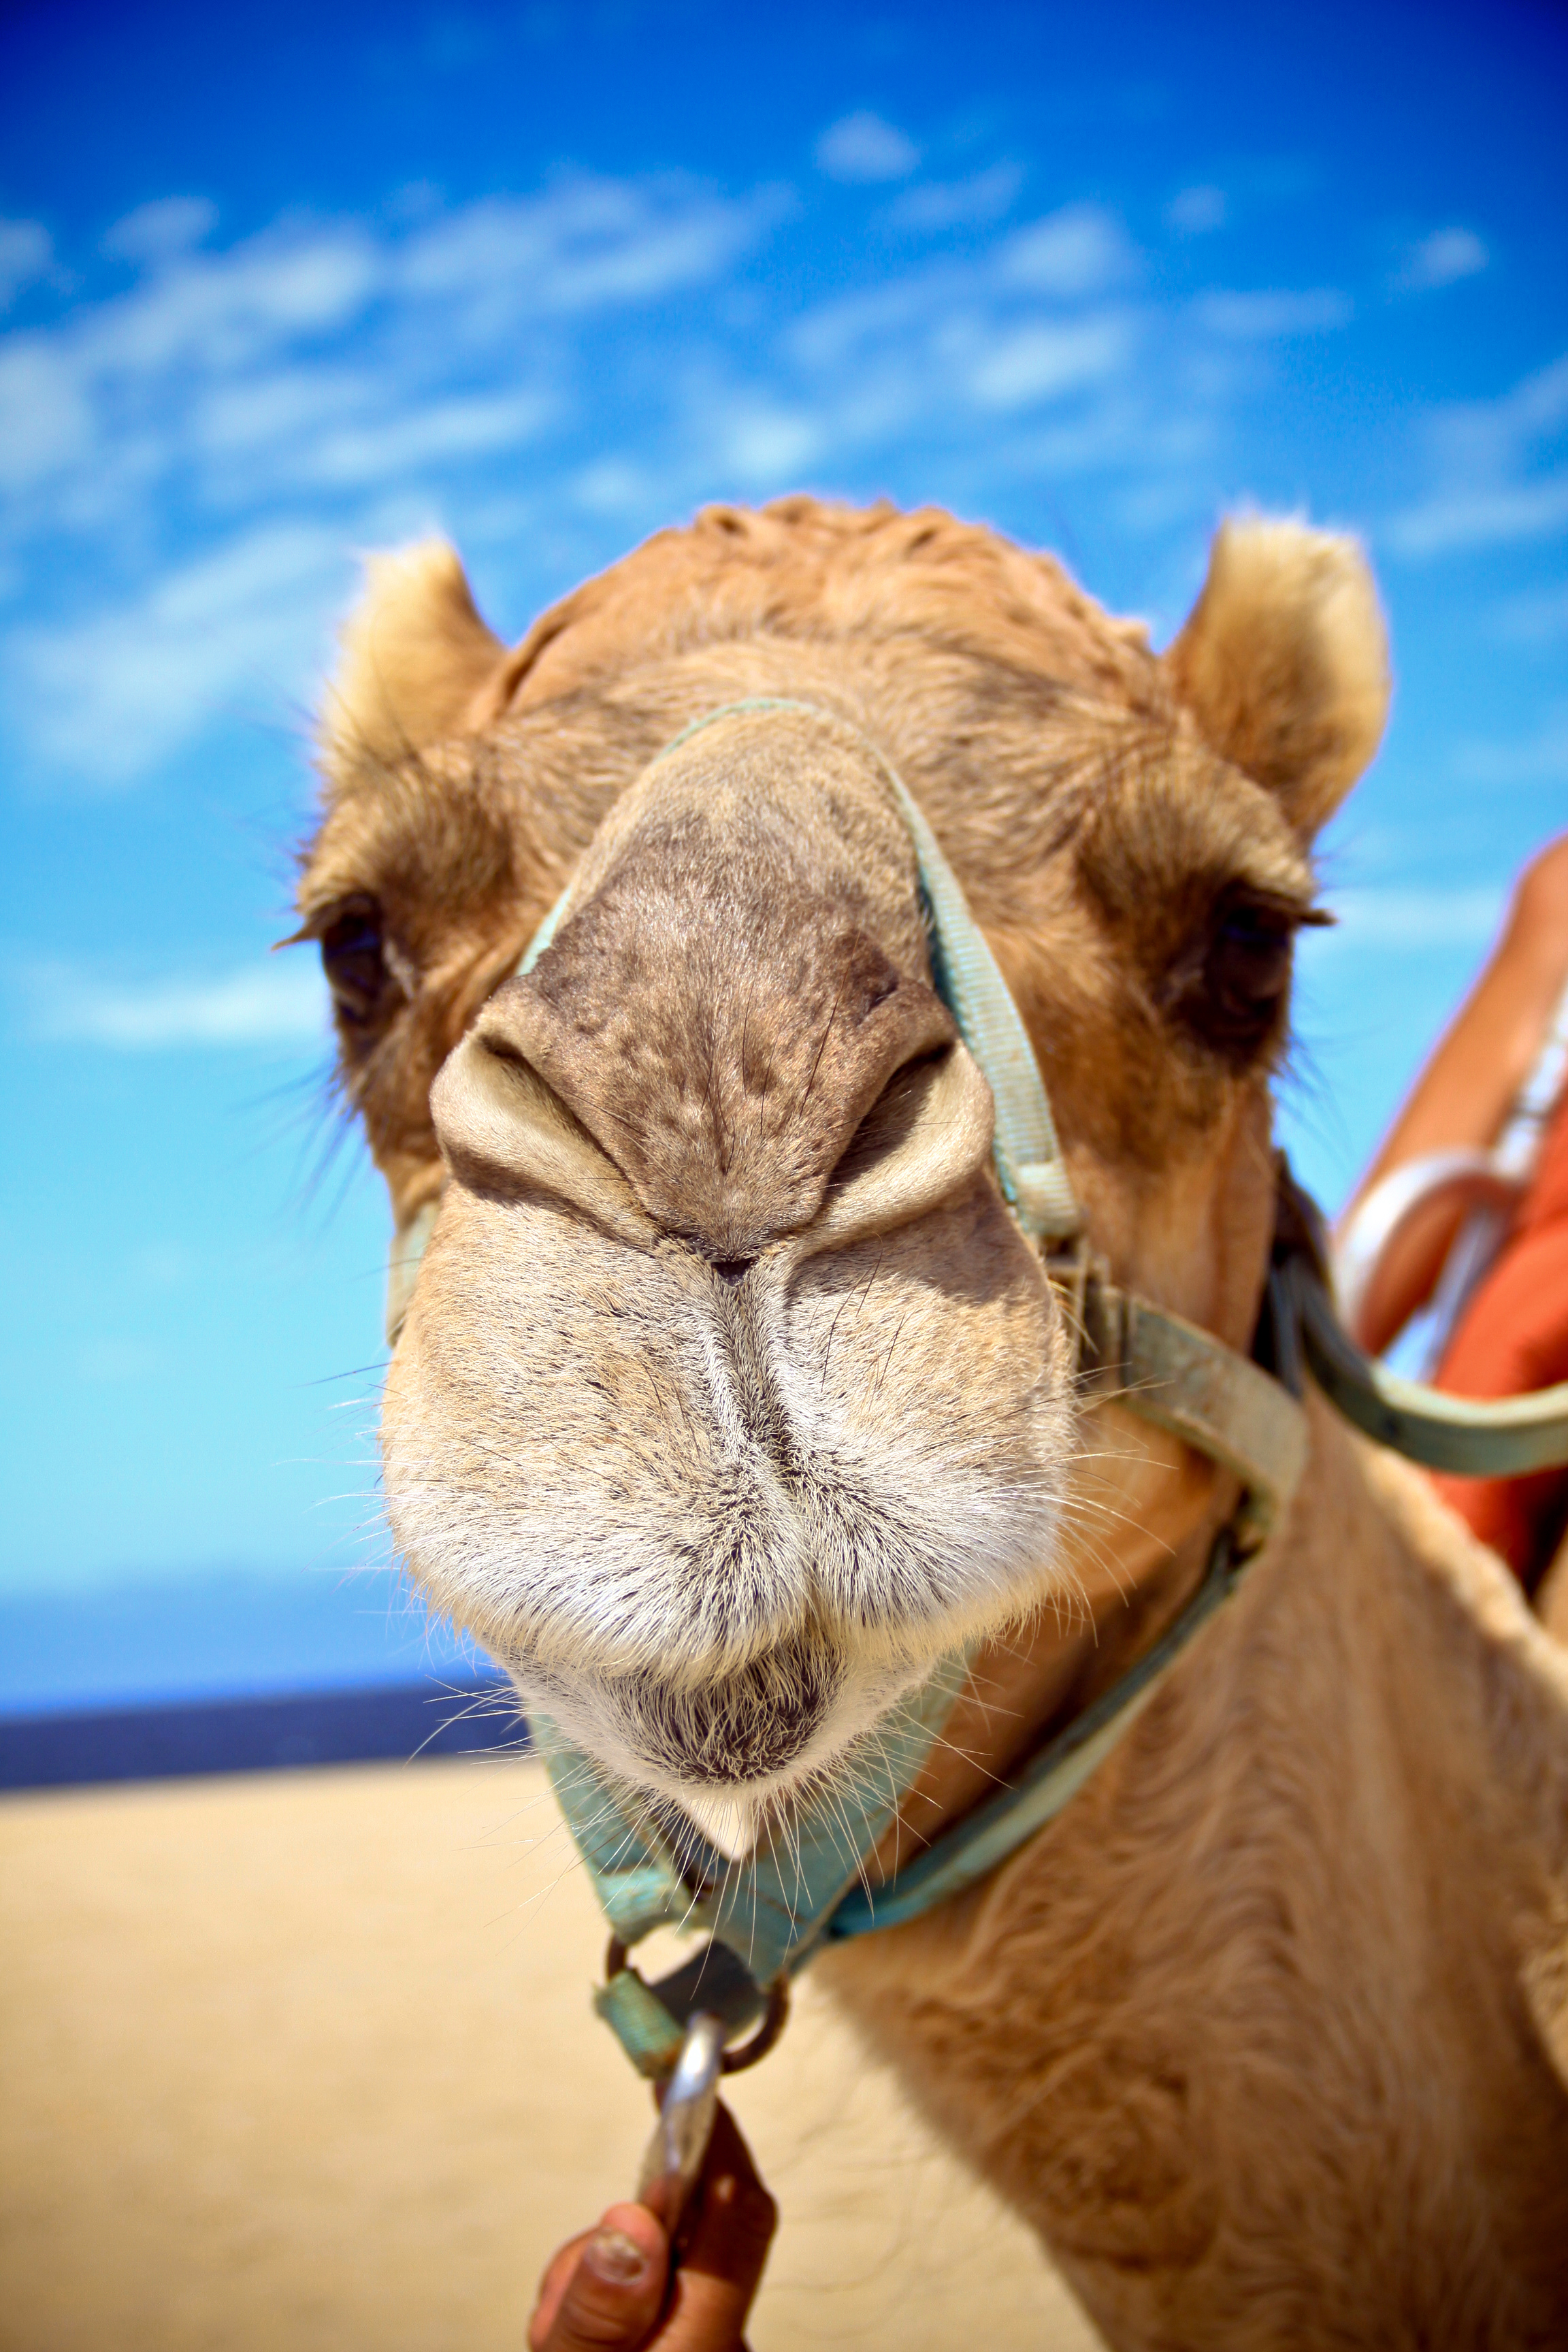 Camel rides make for a memorable destination wedding experience